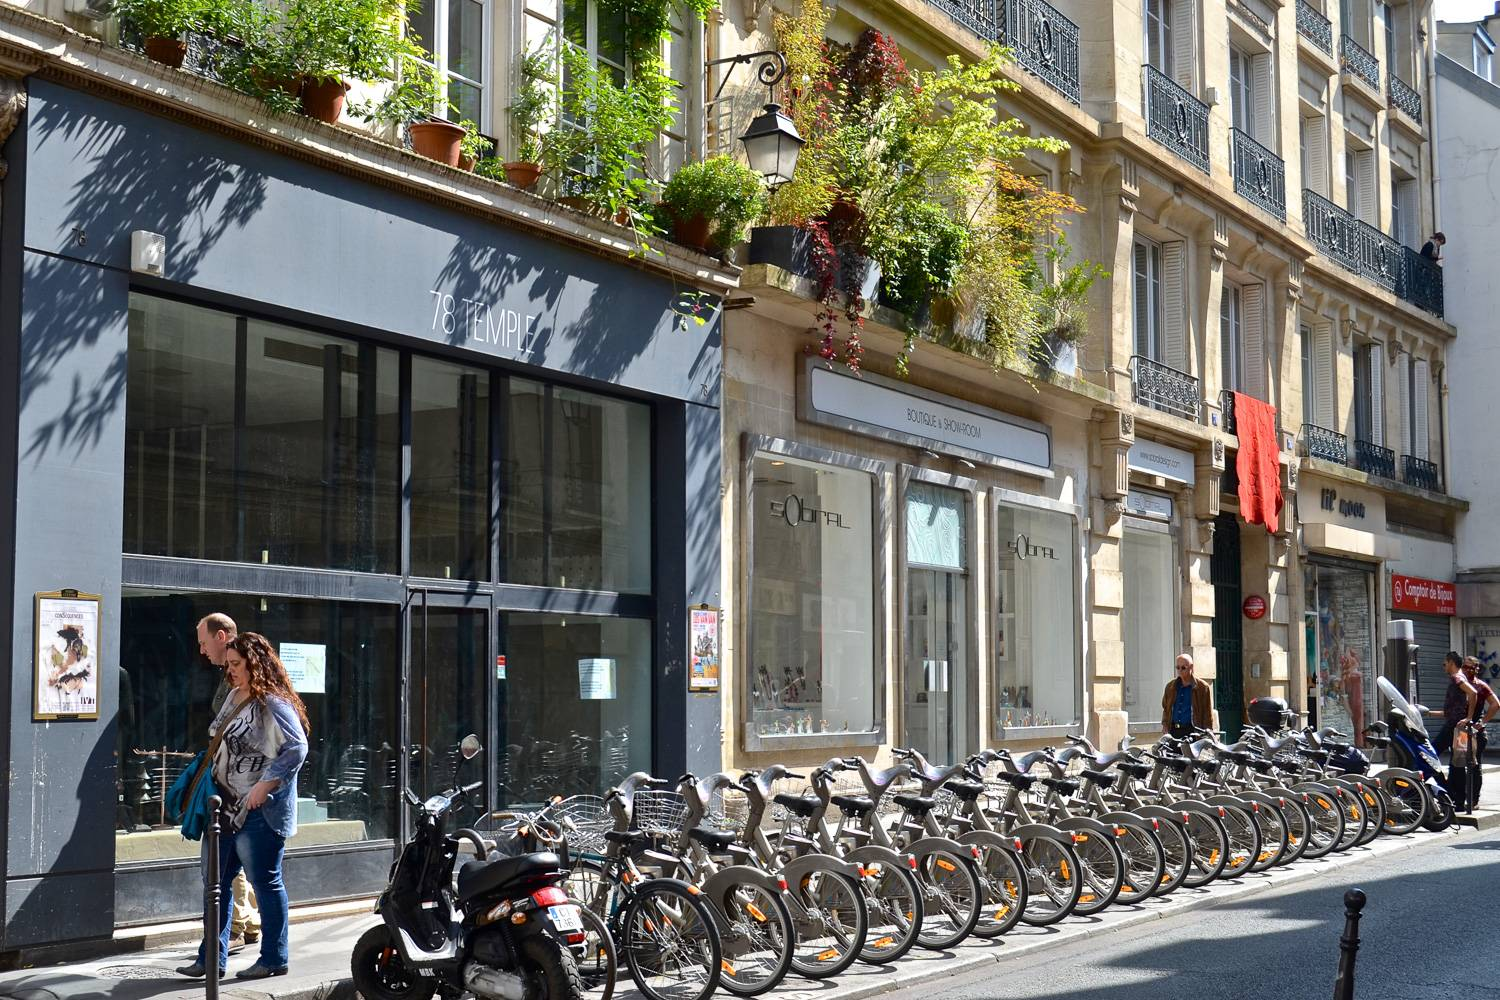 Image of a Vélib' Métropole bike sharing station on a city street in Paris.